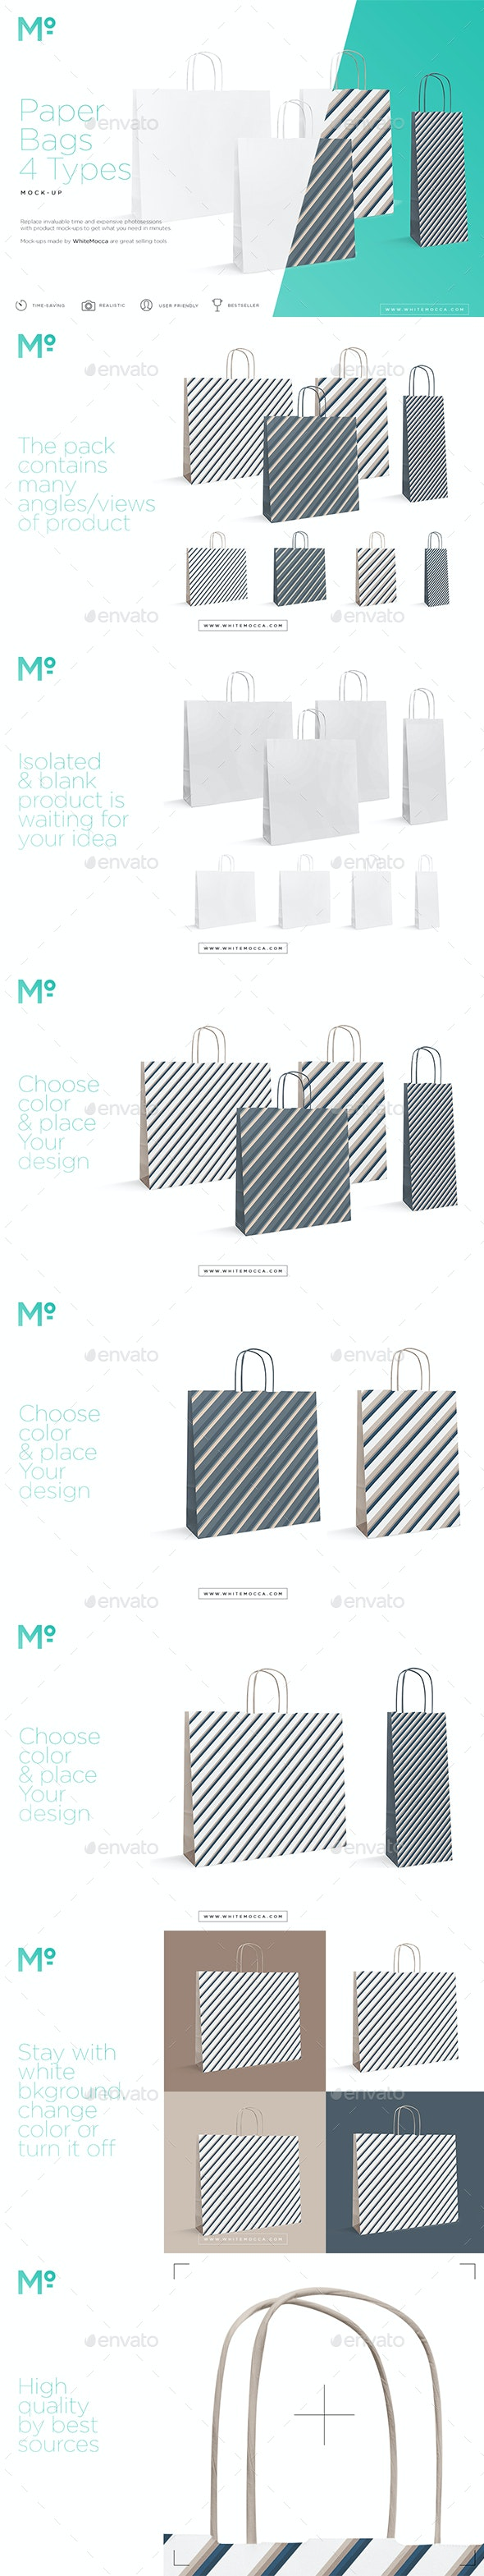 Paper Bags 4 Types Mock-up - Miscellaneous Product Mock-Ups